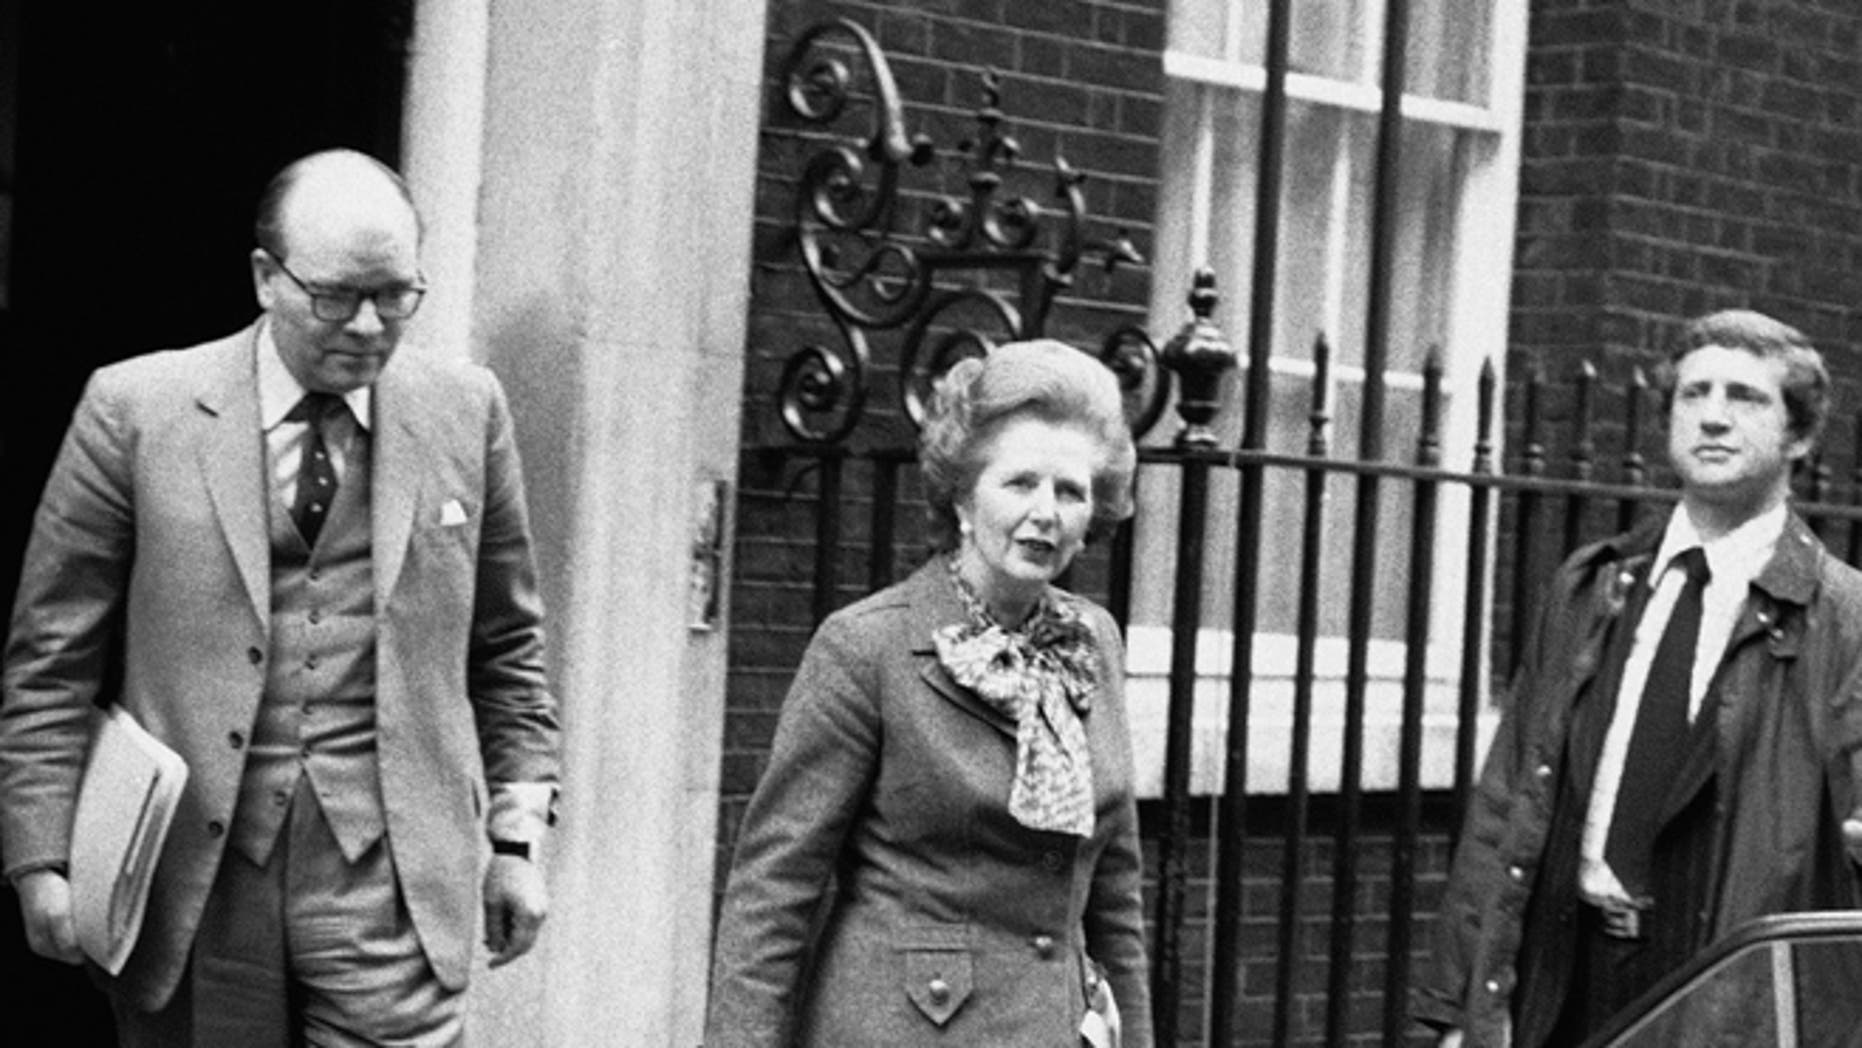 In this April 14, 1982 file photo, British Prime Minister Margaret Thatcher leaves her official 10 Downing Street residence in London, for an emergency session of Parliament on the Falklands crisis.